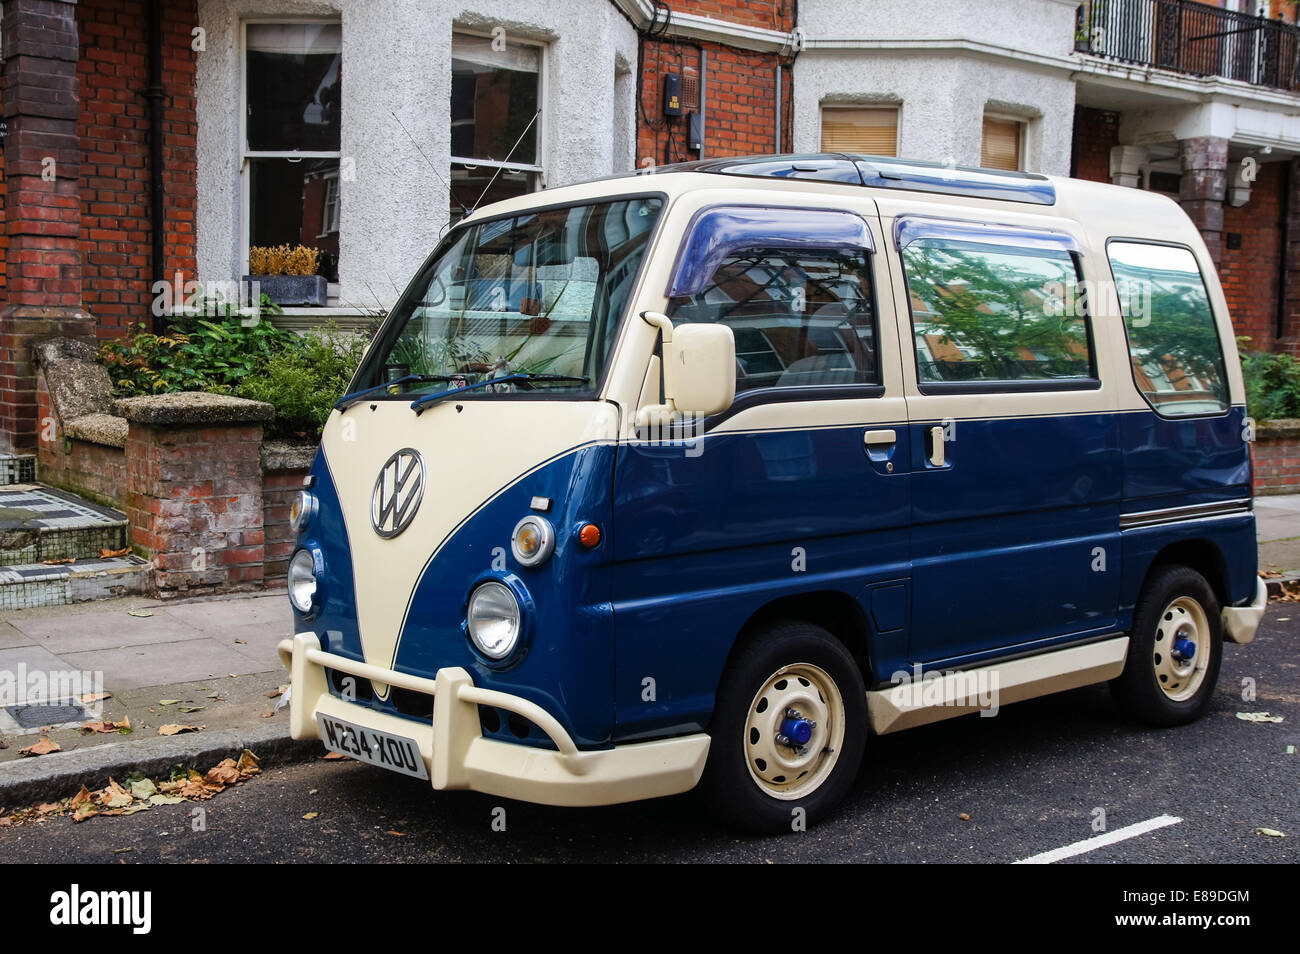 Volkswagen van parked in residential area in London England United Kingdom UK - Stock Image